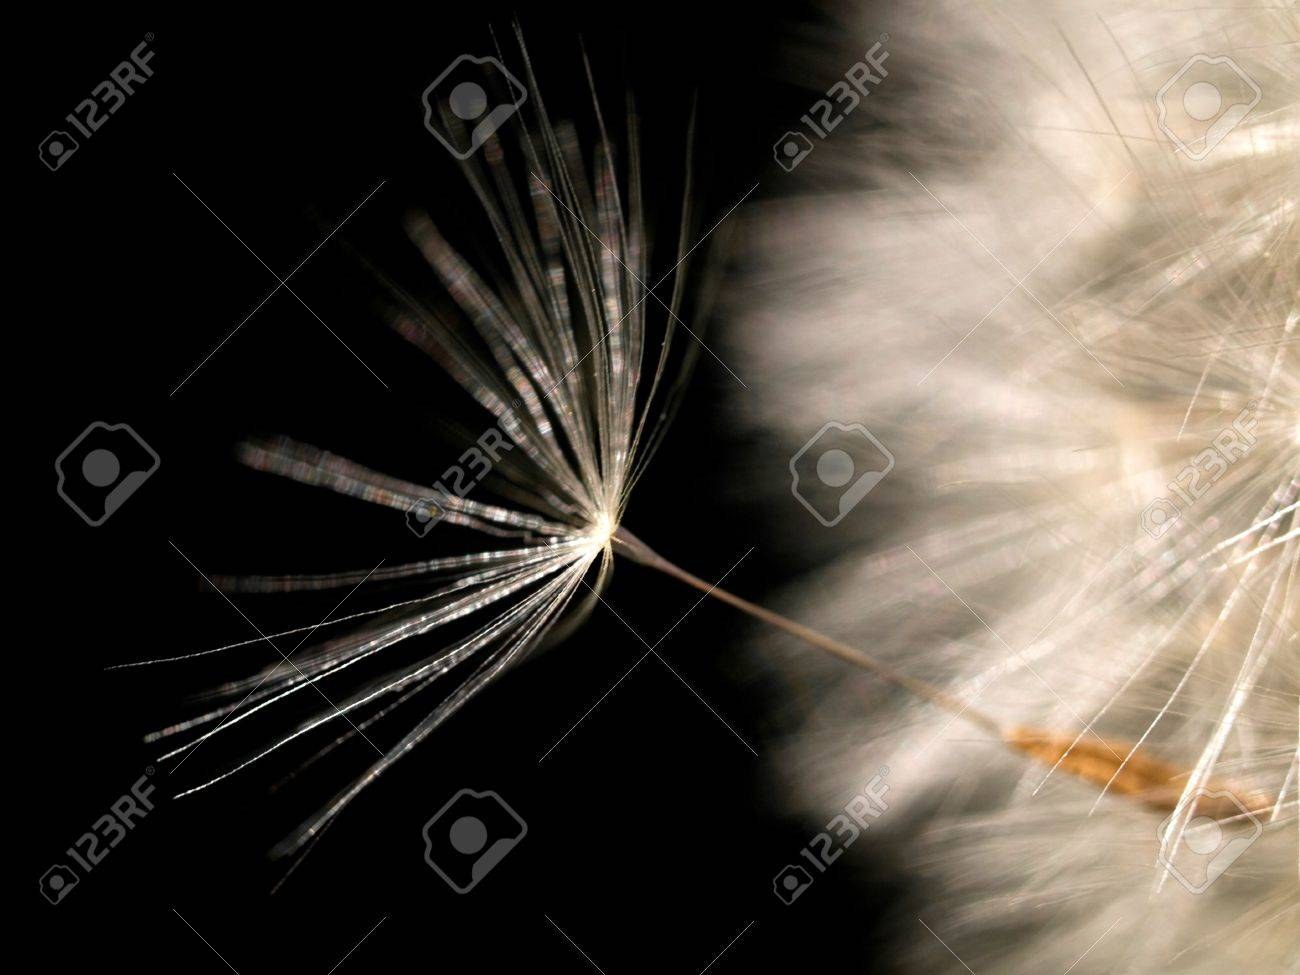 Dandelion seed on black background Stock Photo - 4494812